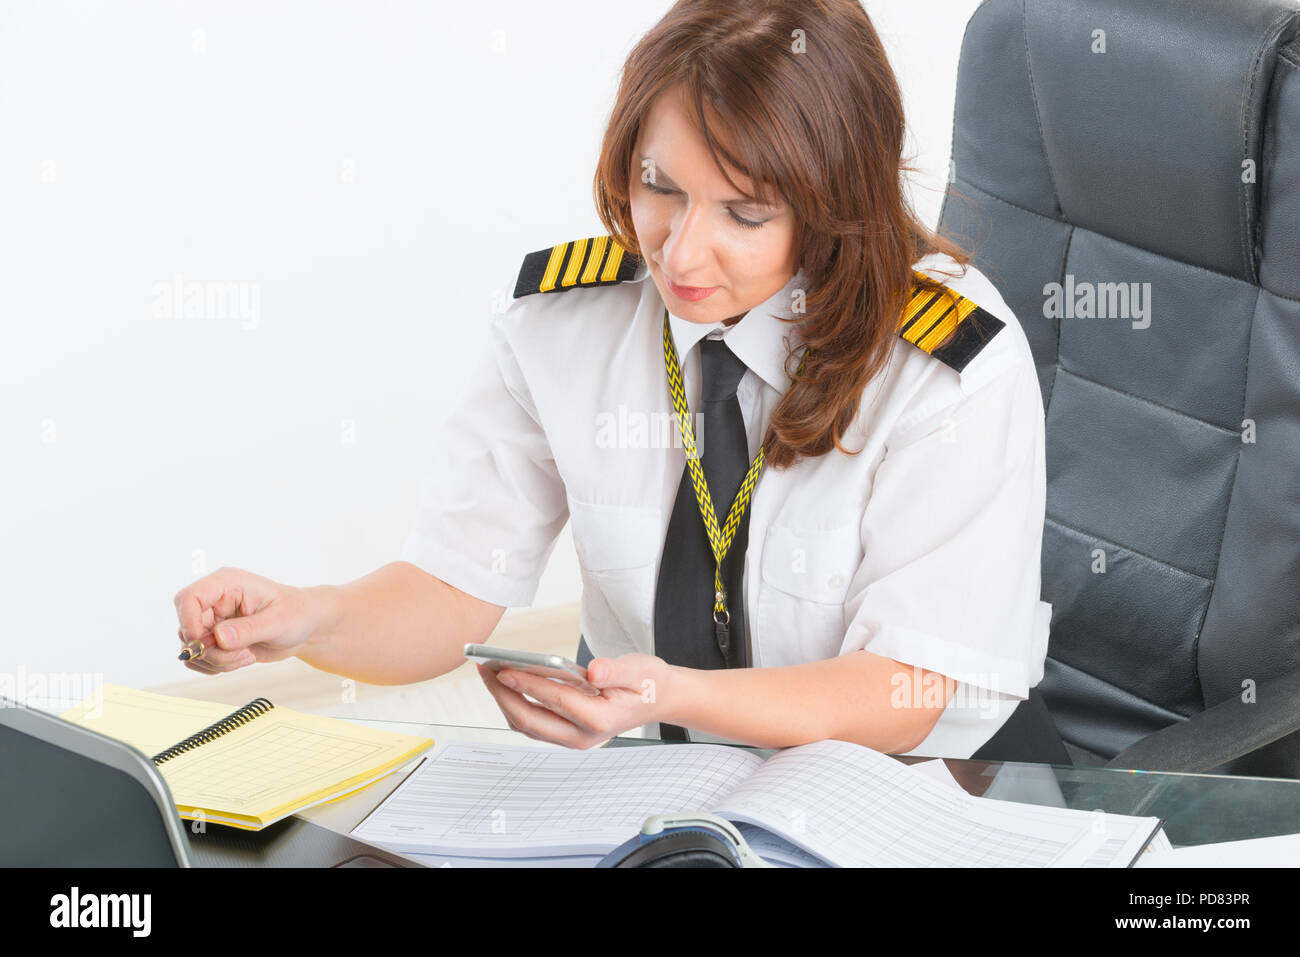 Beautiful woman pilot wearing uniform with epaulettes using mobile phone and laptop at preflight briefing - Stock Image